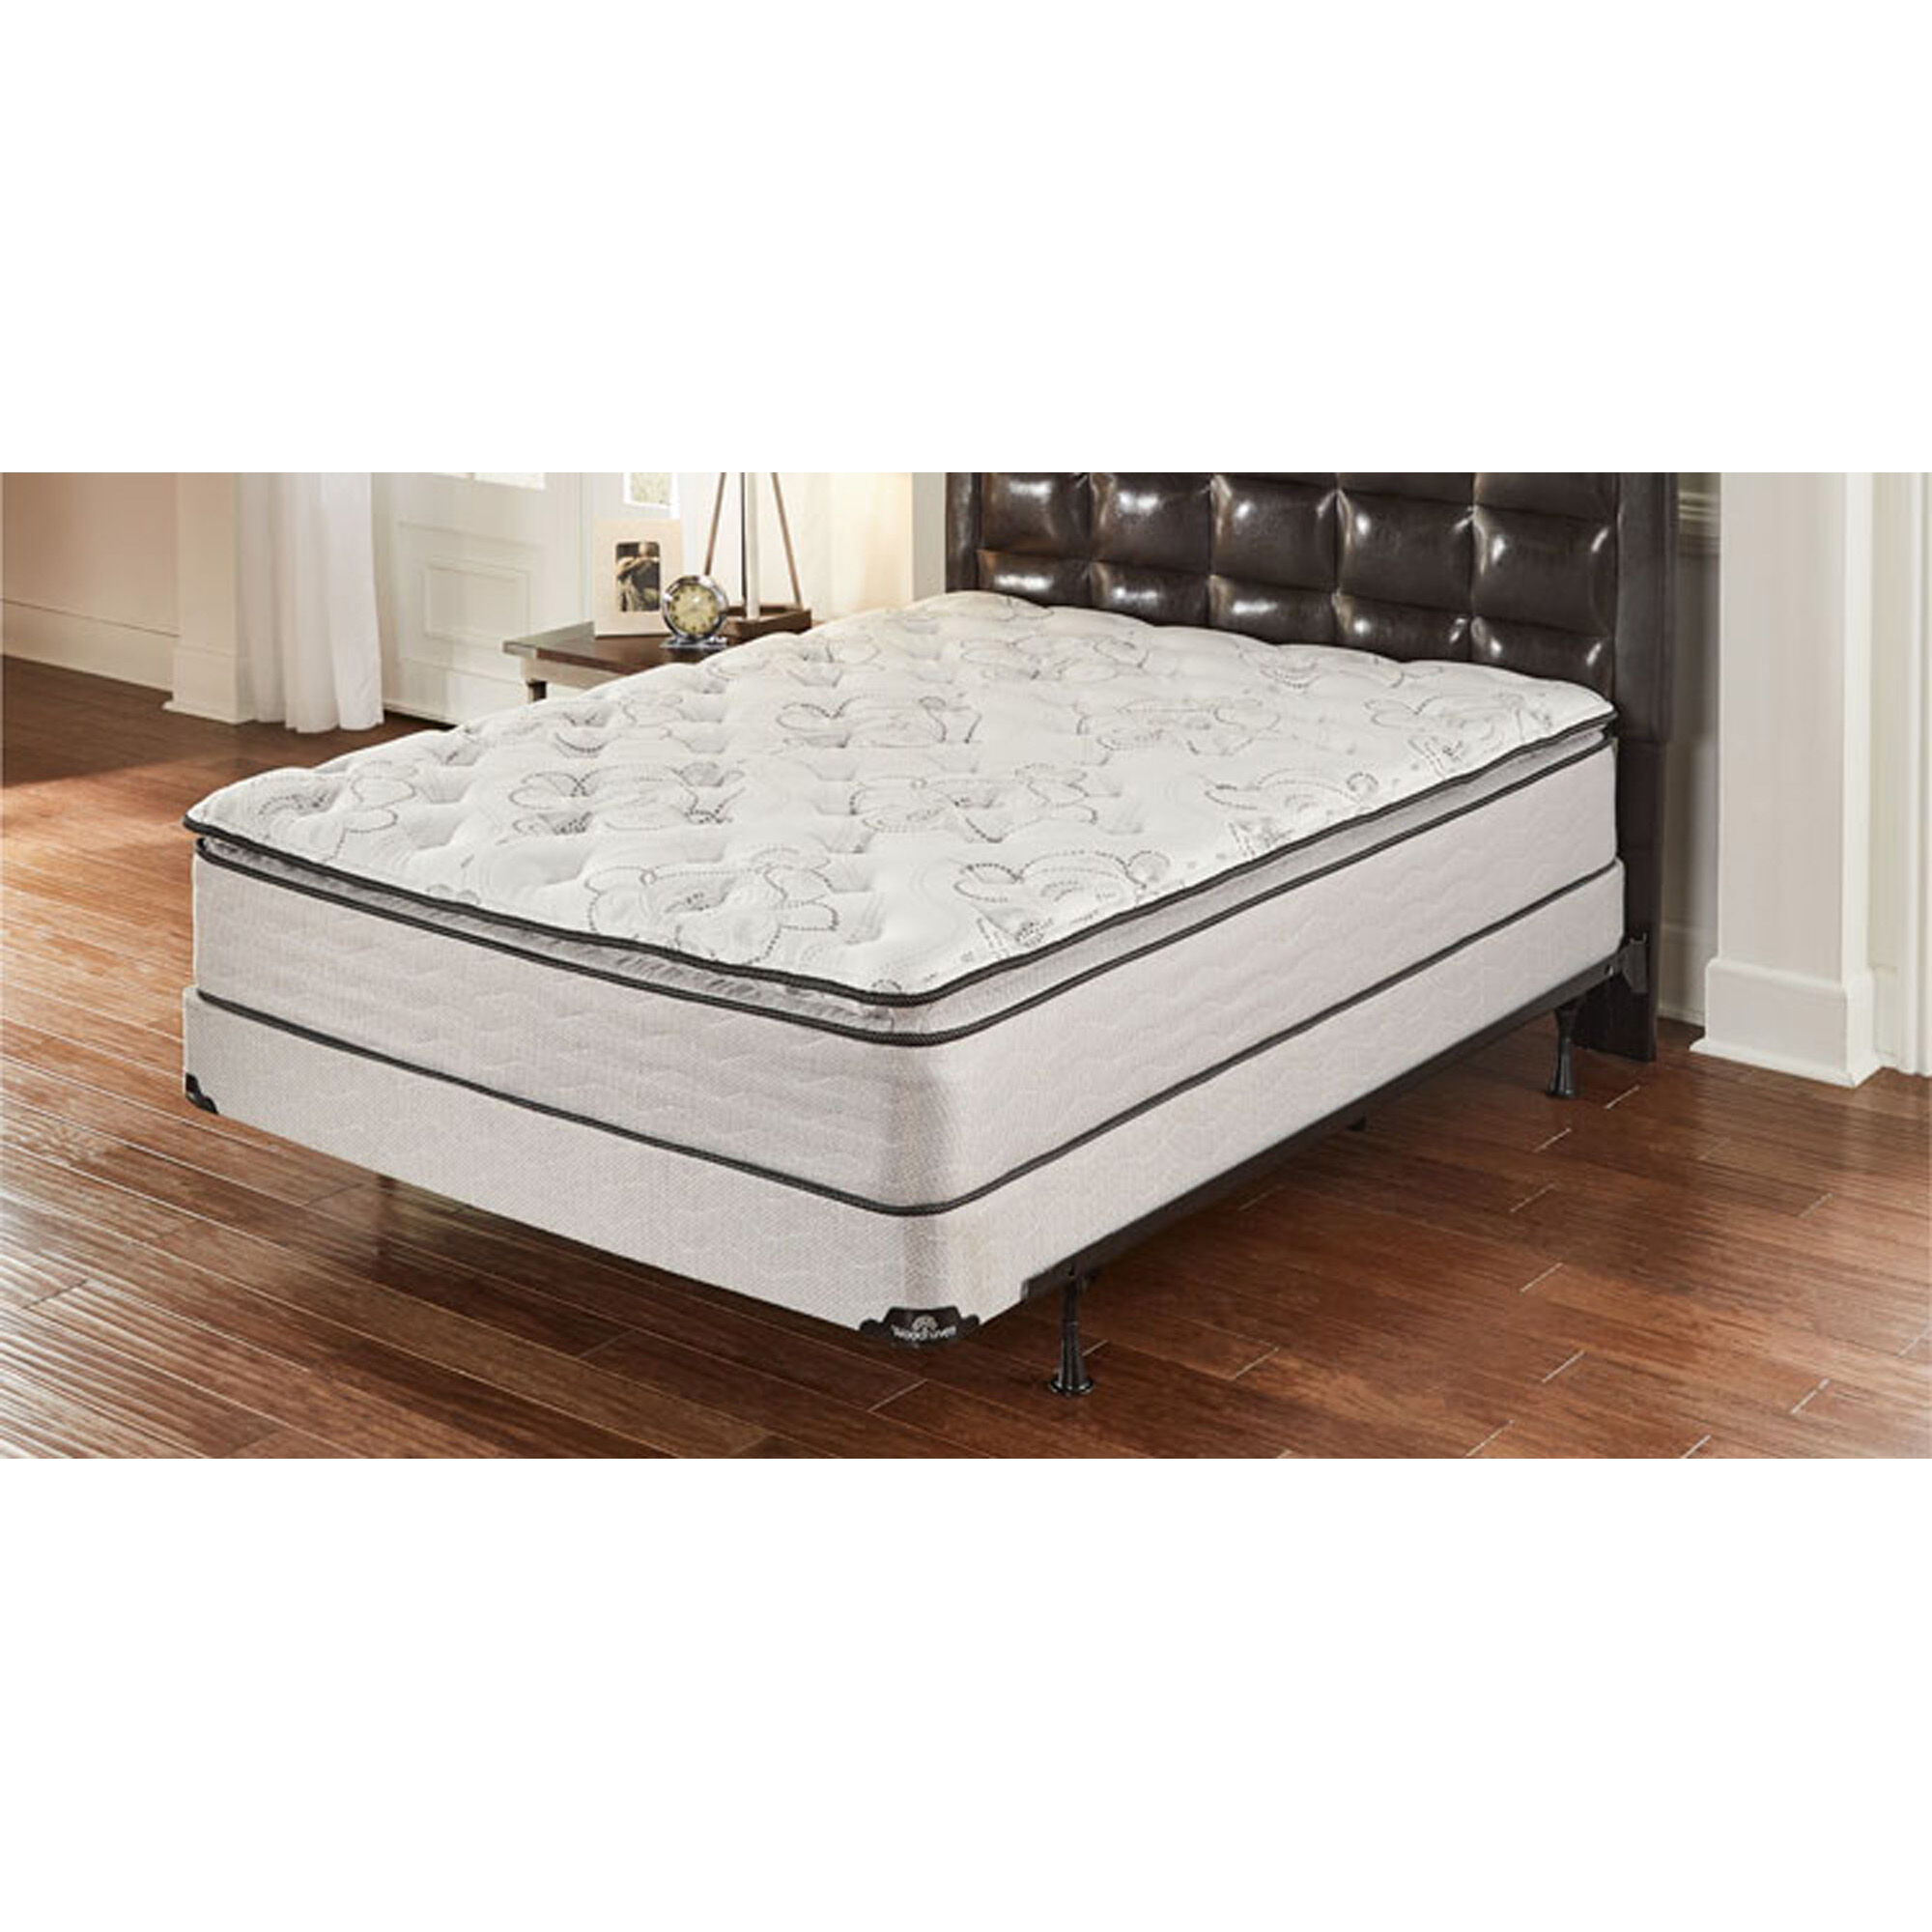 Pillow Top King Mattress Woodhaven Industries Mattress Sets King Pillow Top Mattress Set